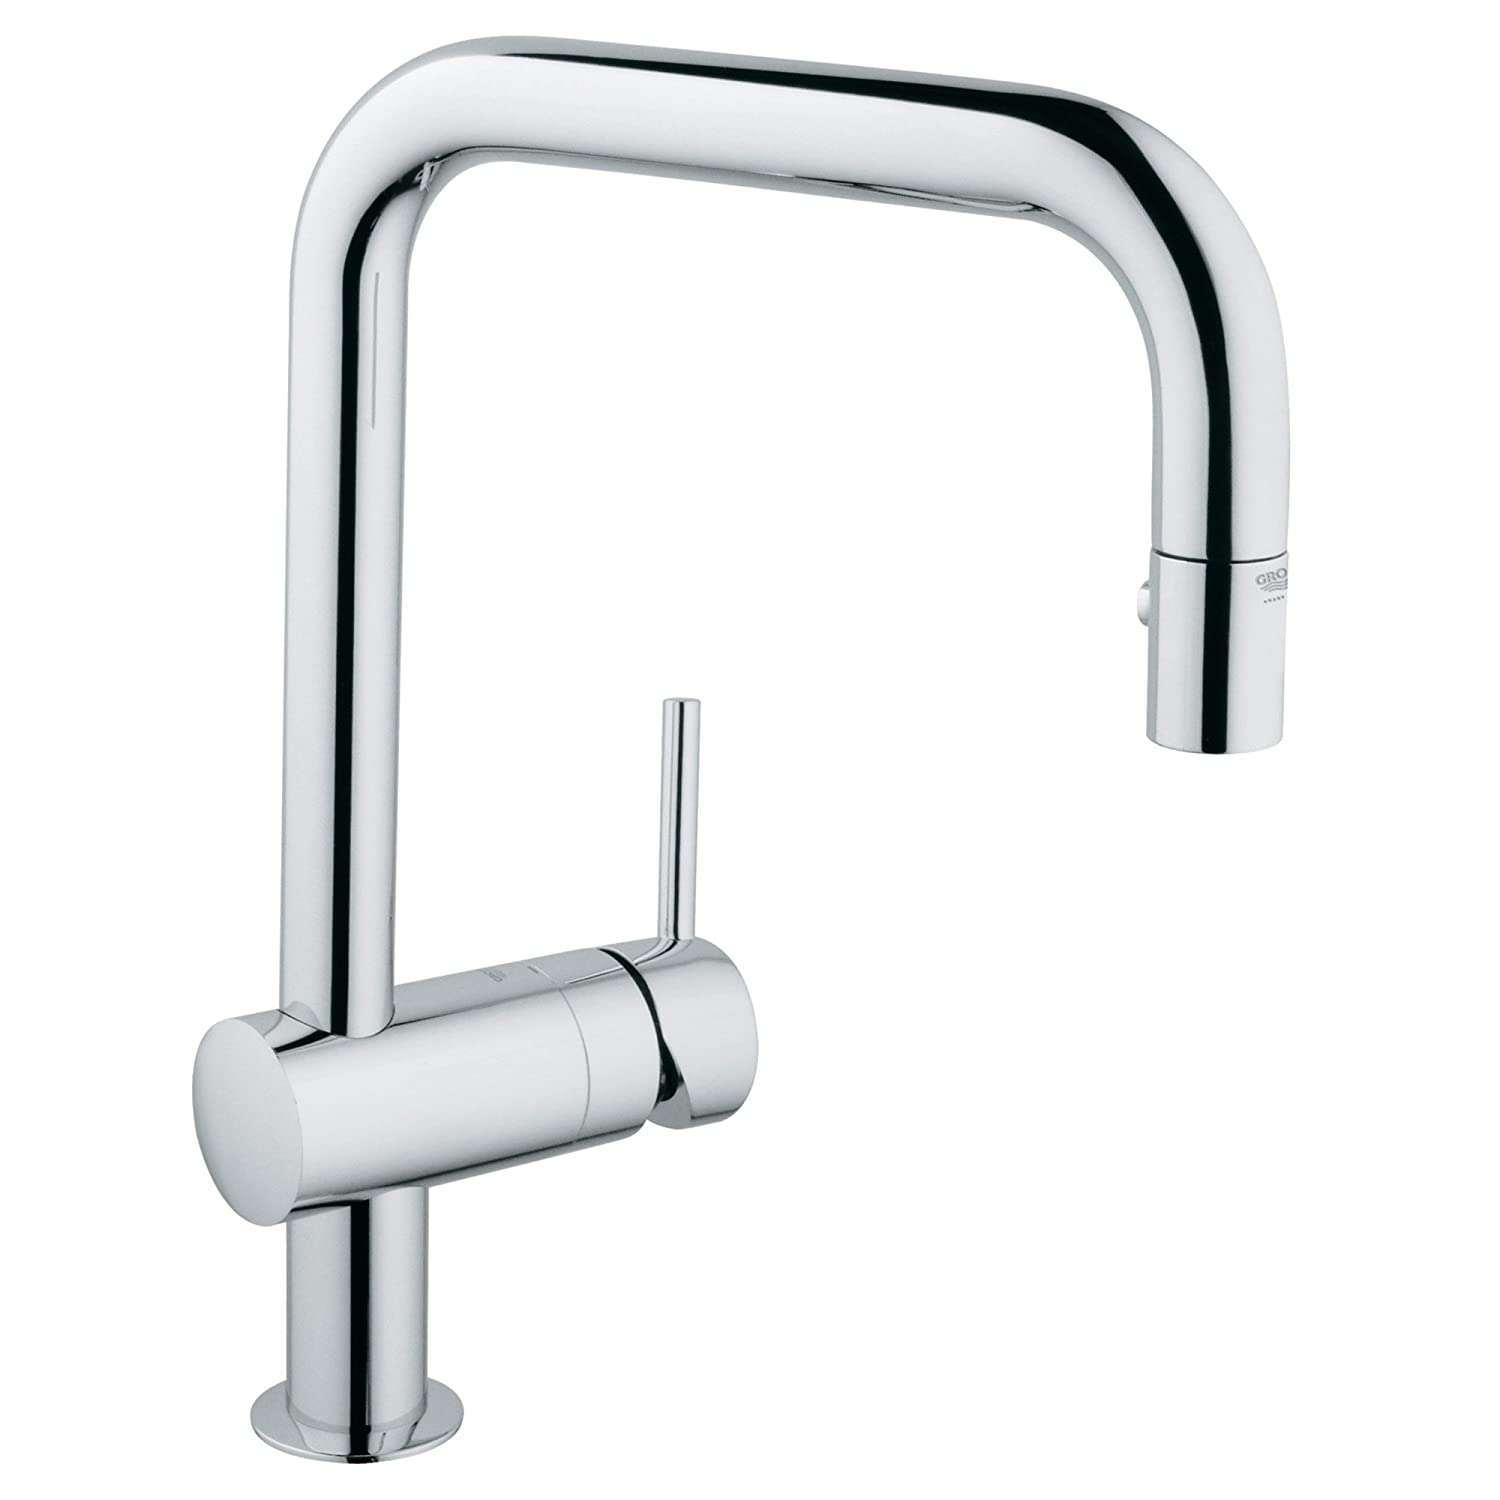 Grohe Concetto Kitchen Faucet Grohe 32665001 Concetto 1 Handle Pull Down Kitchen Faucet